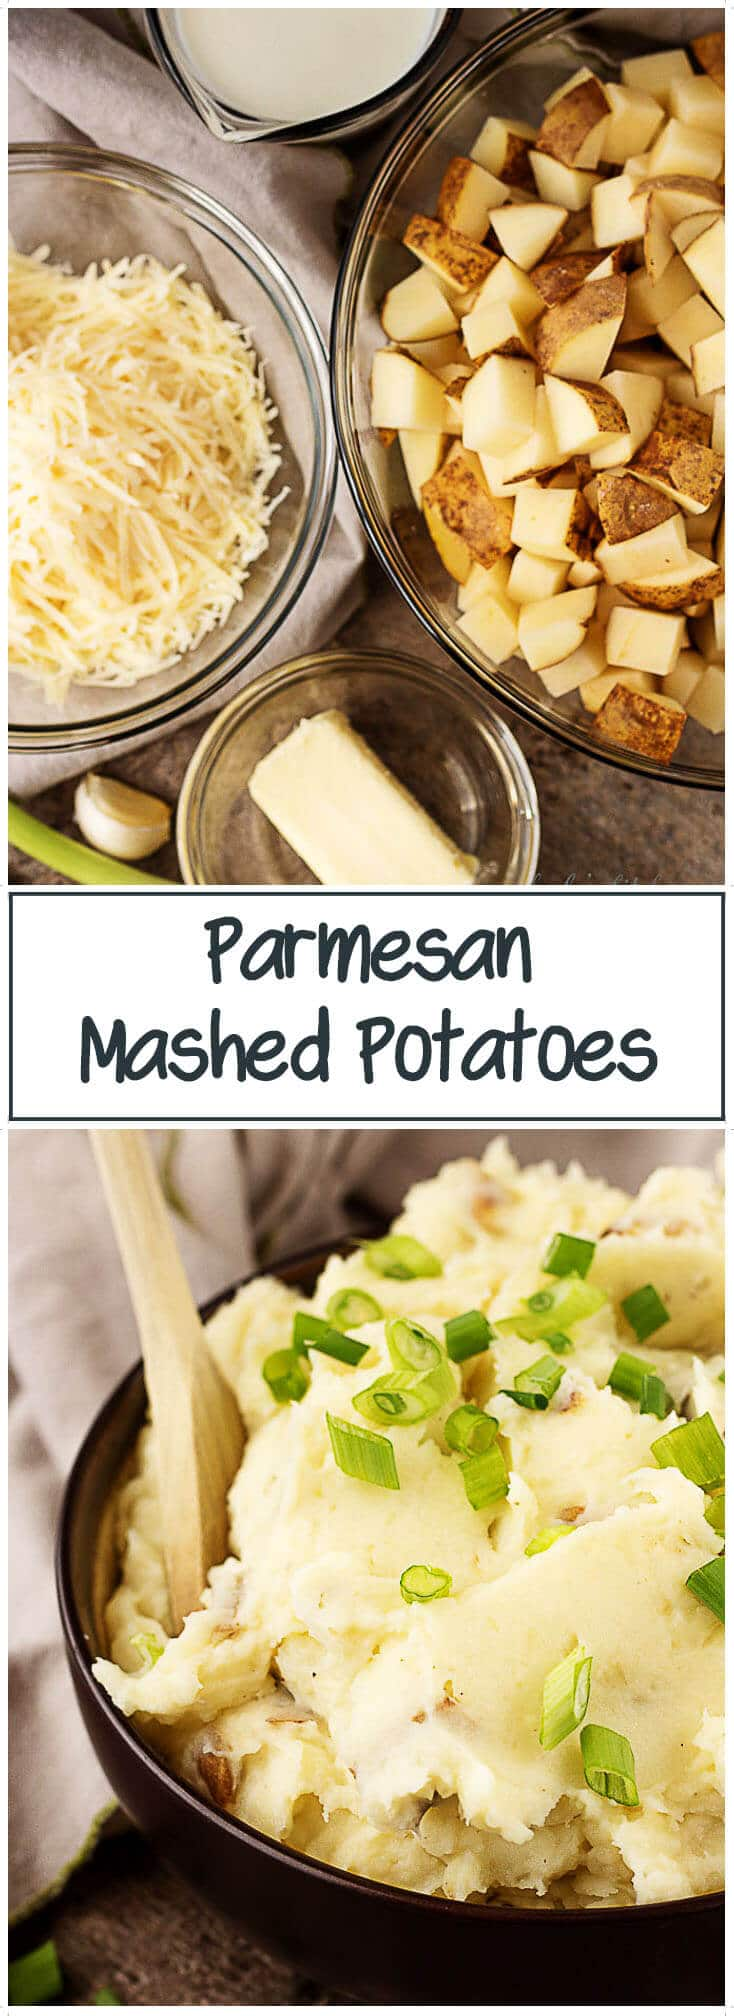 Warm and cheesy parmesan mashed potatoes made with fresh garlic and nutty parmesan cheese. It's the perfect side to compliment any main dish. #potatoes #sidedish #mashed #cheesy